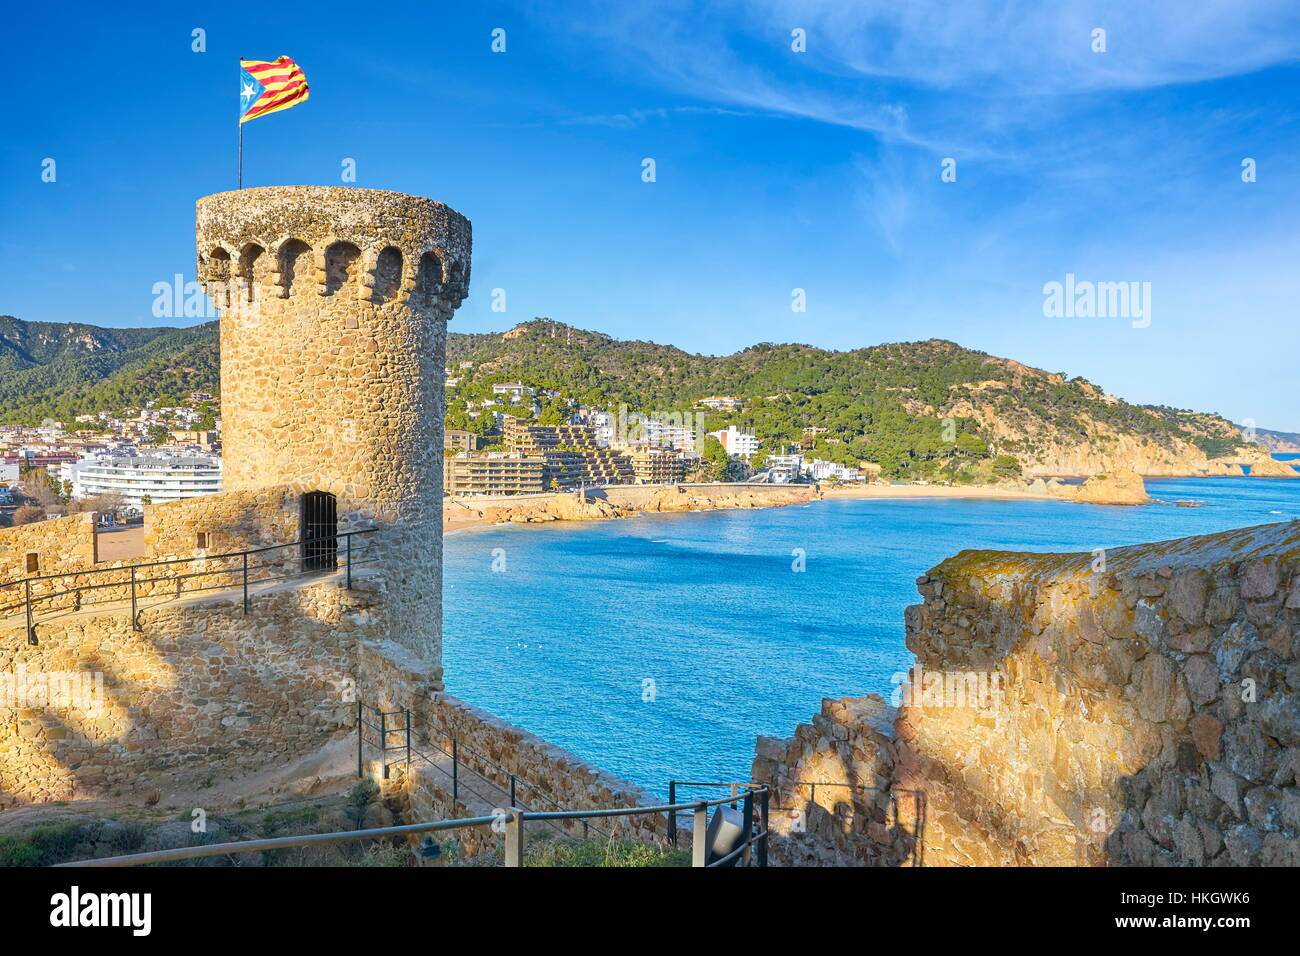 Tossa del Mar, Costa Brava, Catalogne, Espagne Photo Stock